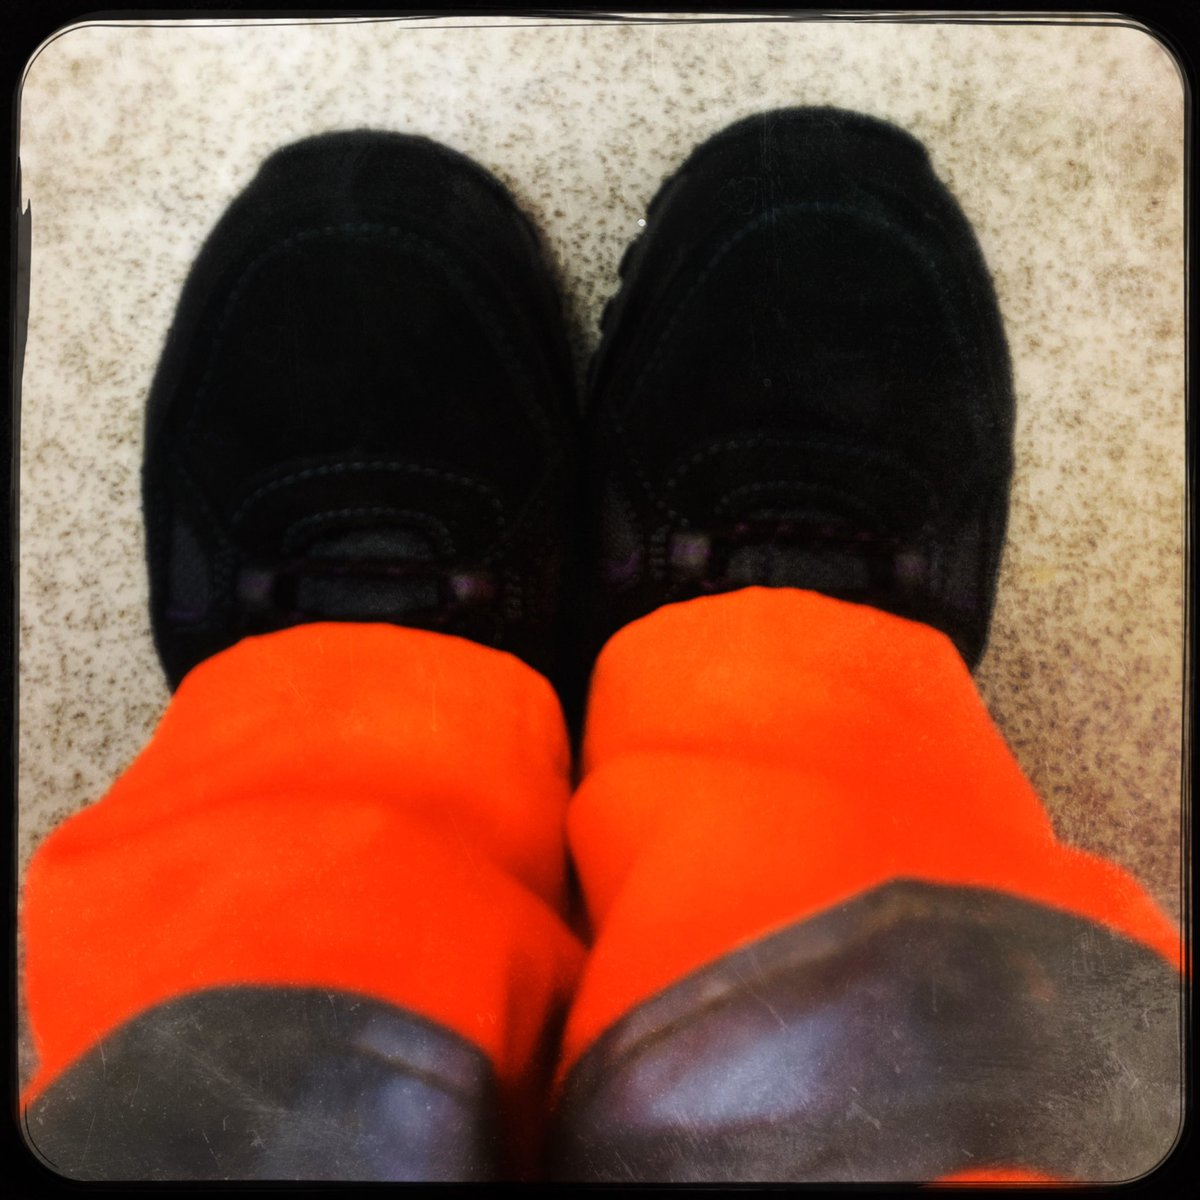 Today I will mostly be in high vis orange. I would say top to toe, but that's not entirely accurate as my toes are encased in steel...